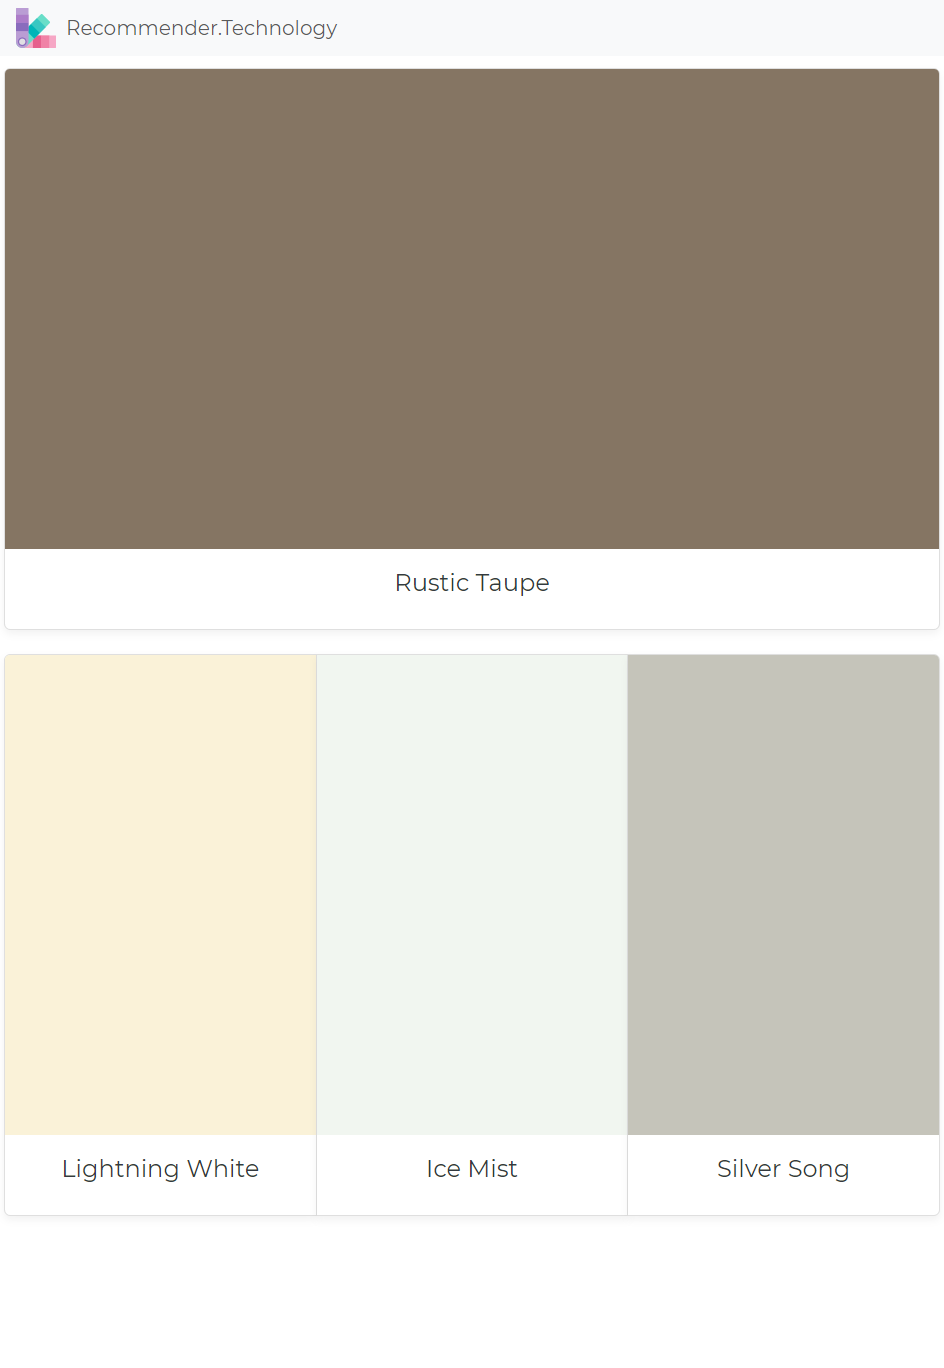 Taupe Paint Colors Living Room: Rustic Taupe: Lightning White, Ice Mist, Silver Song